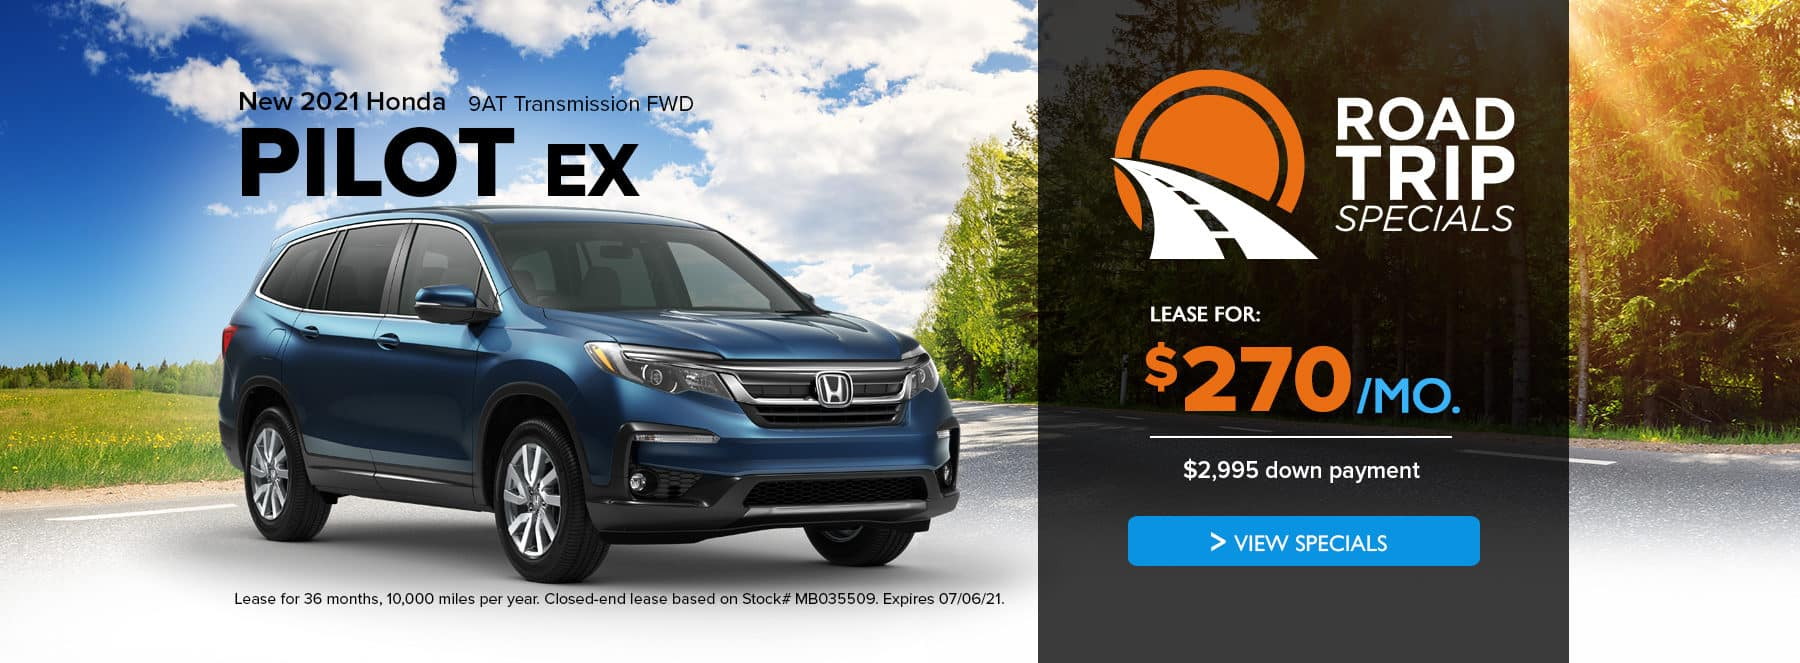 lease a new 2021 honda pilot ex for $270/month for $2,995 down payment